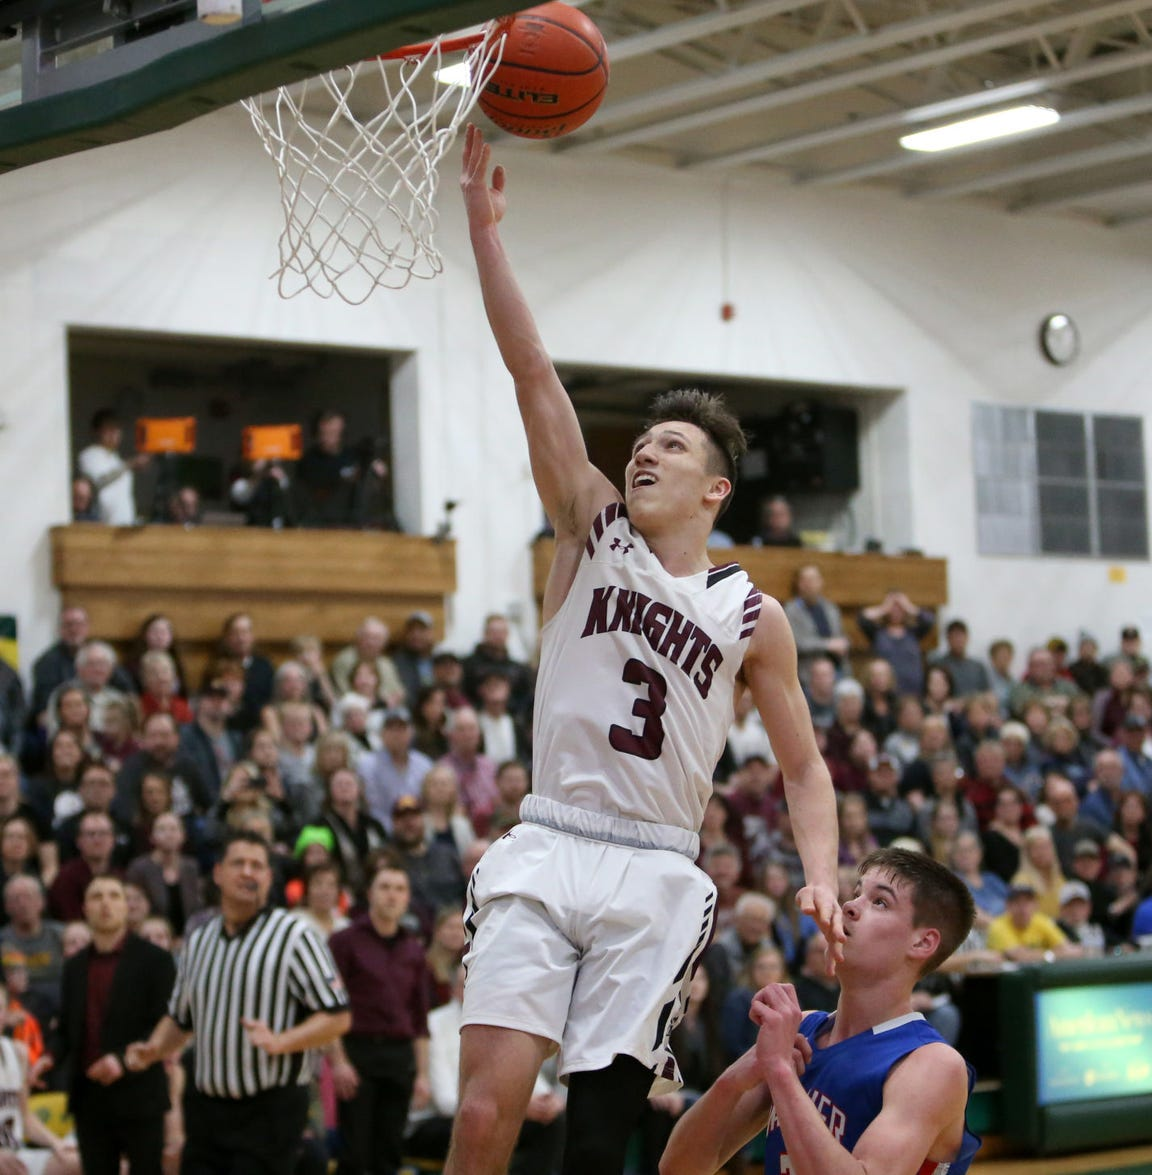 Aberdeen Christian senior Andrew Rohrbach goes in for a layup.